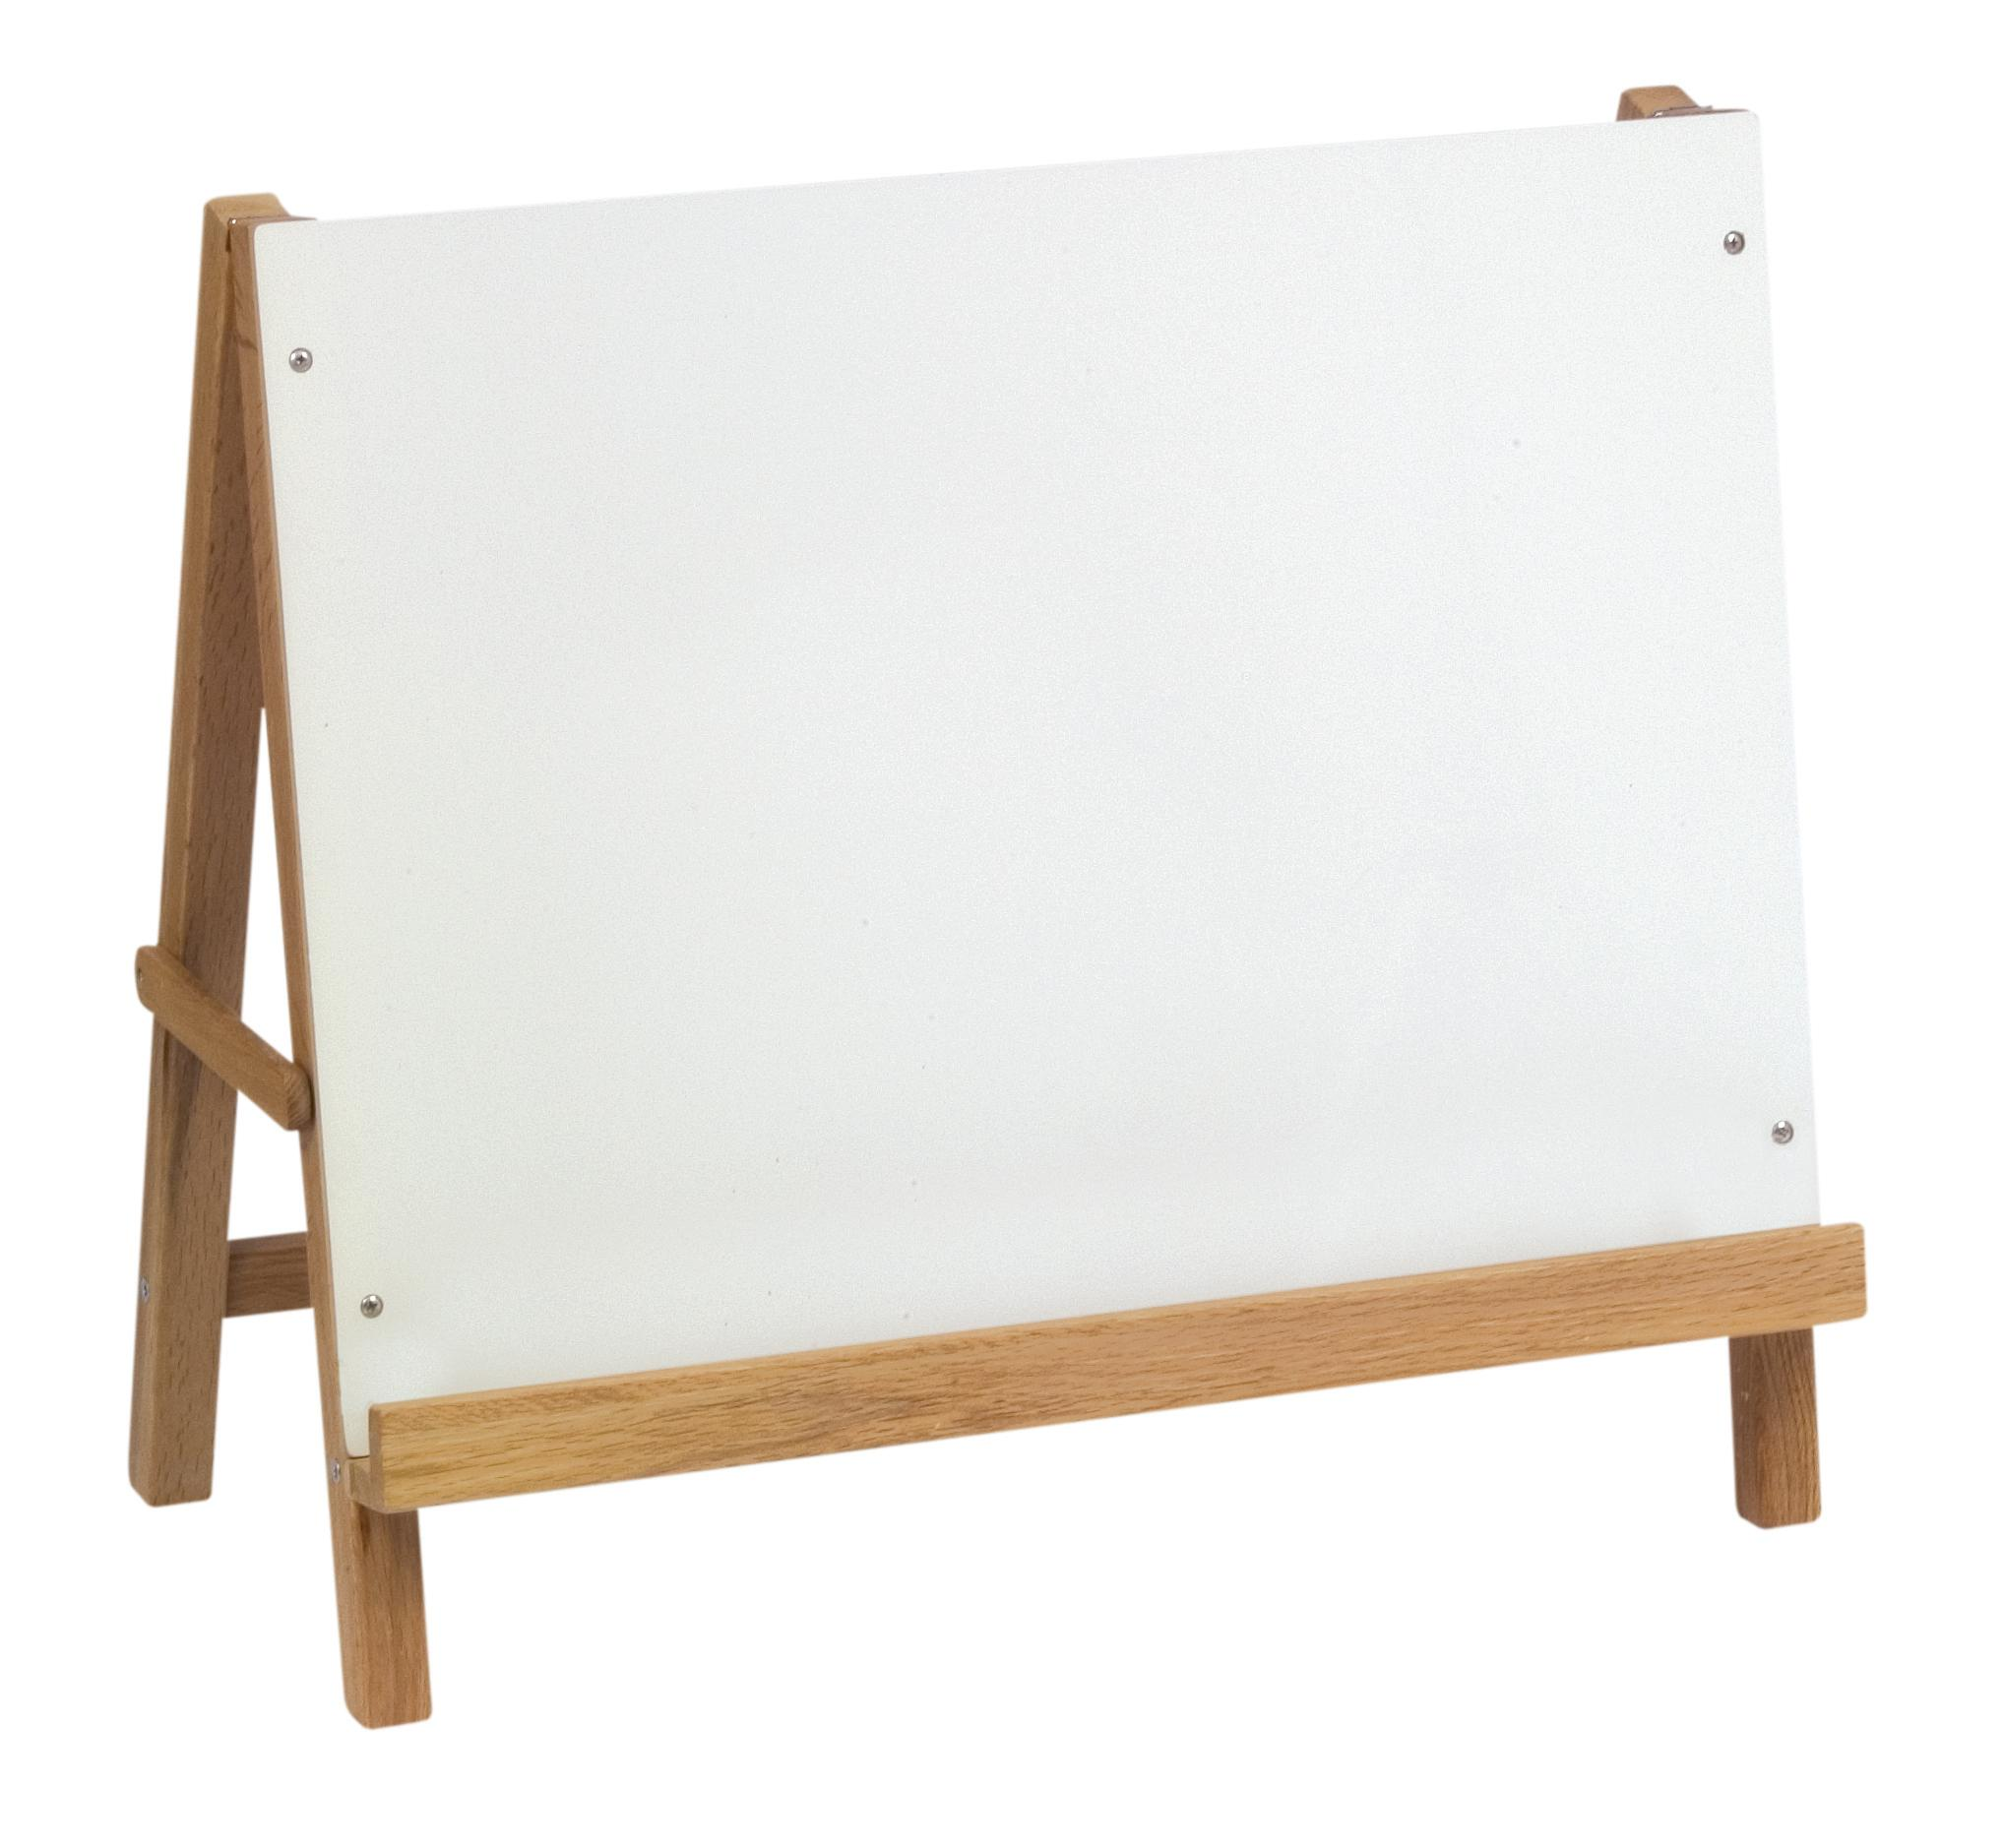 Superieur Images Of Tabletop Easel